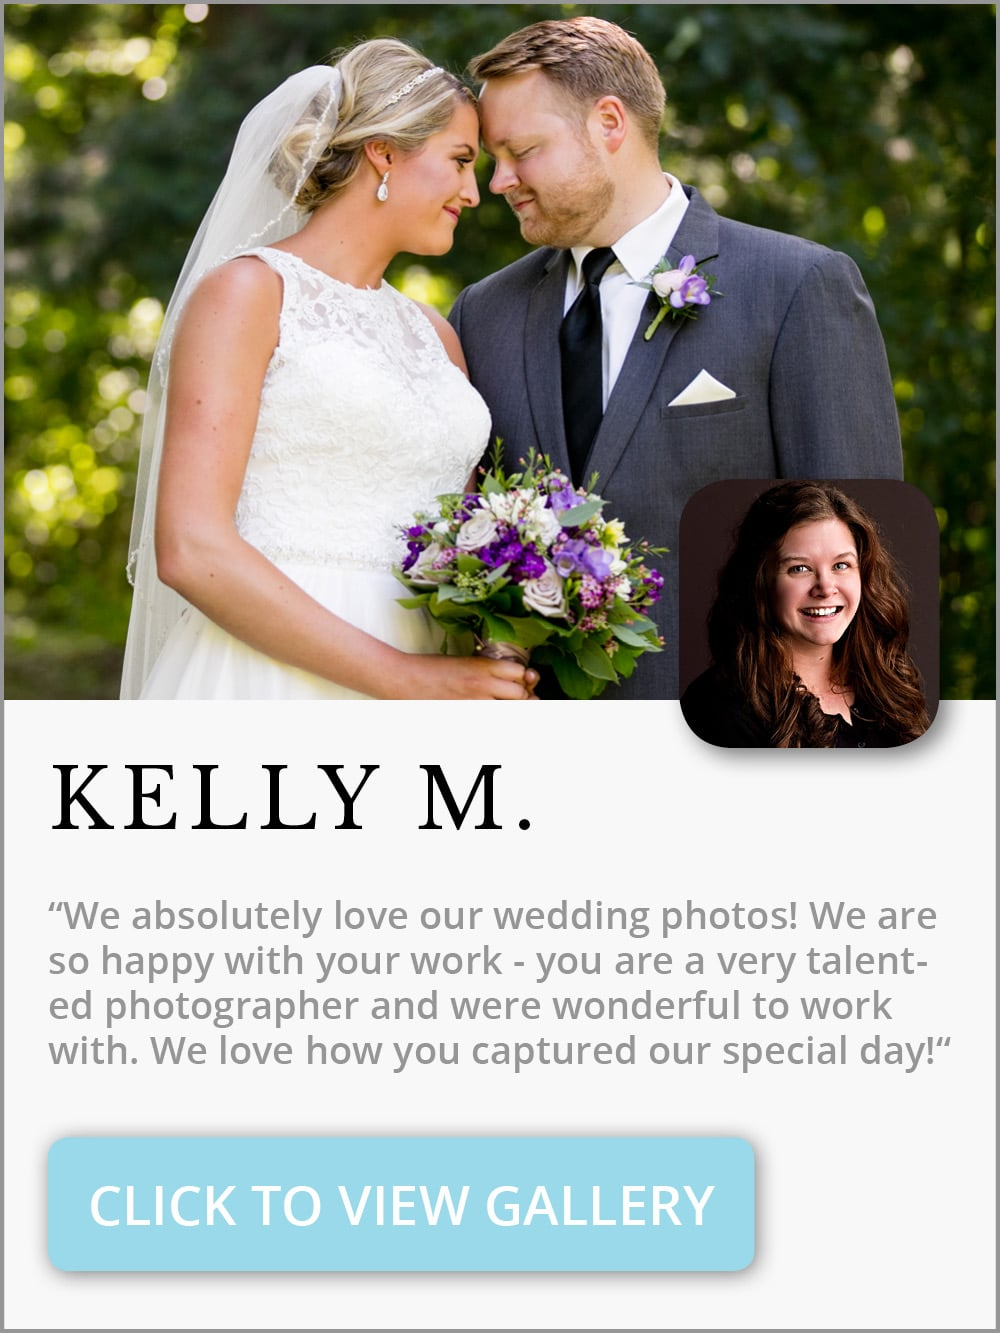 Kelly-M-Website.jpg